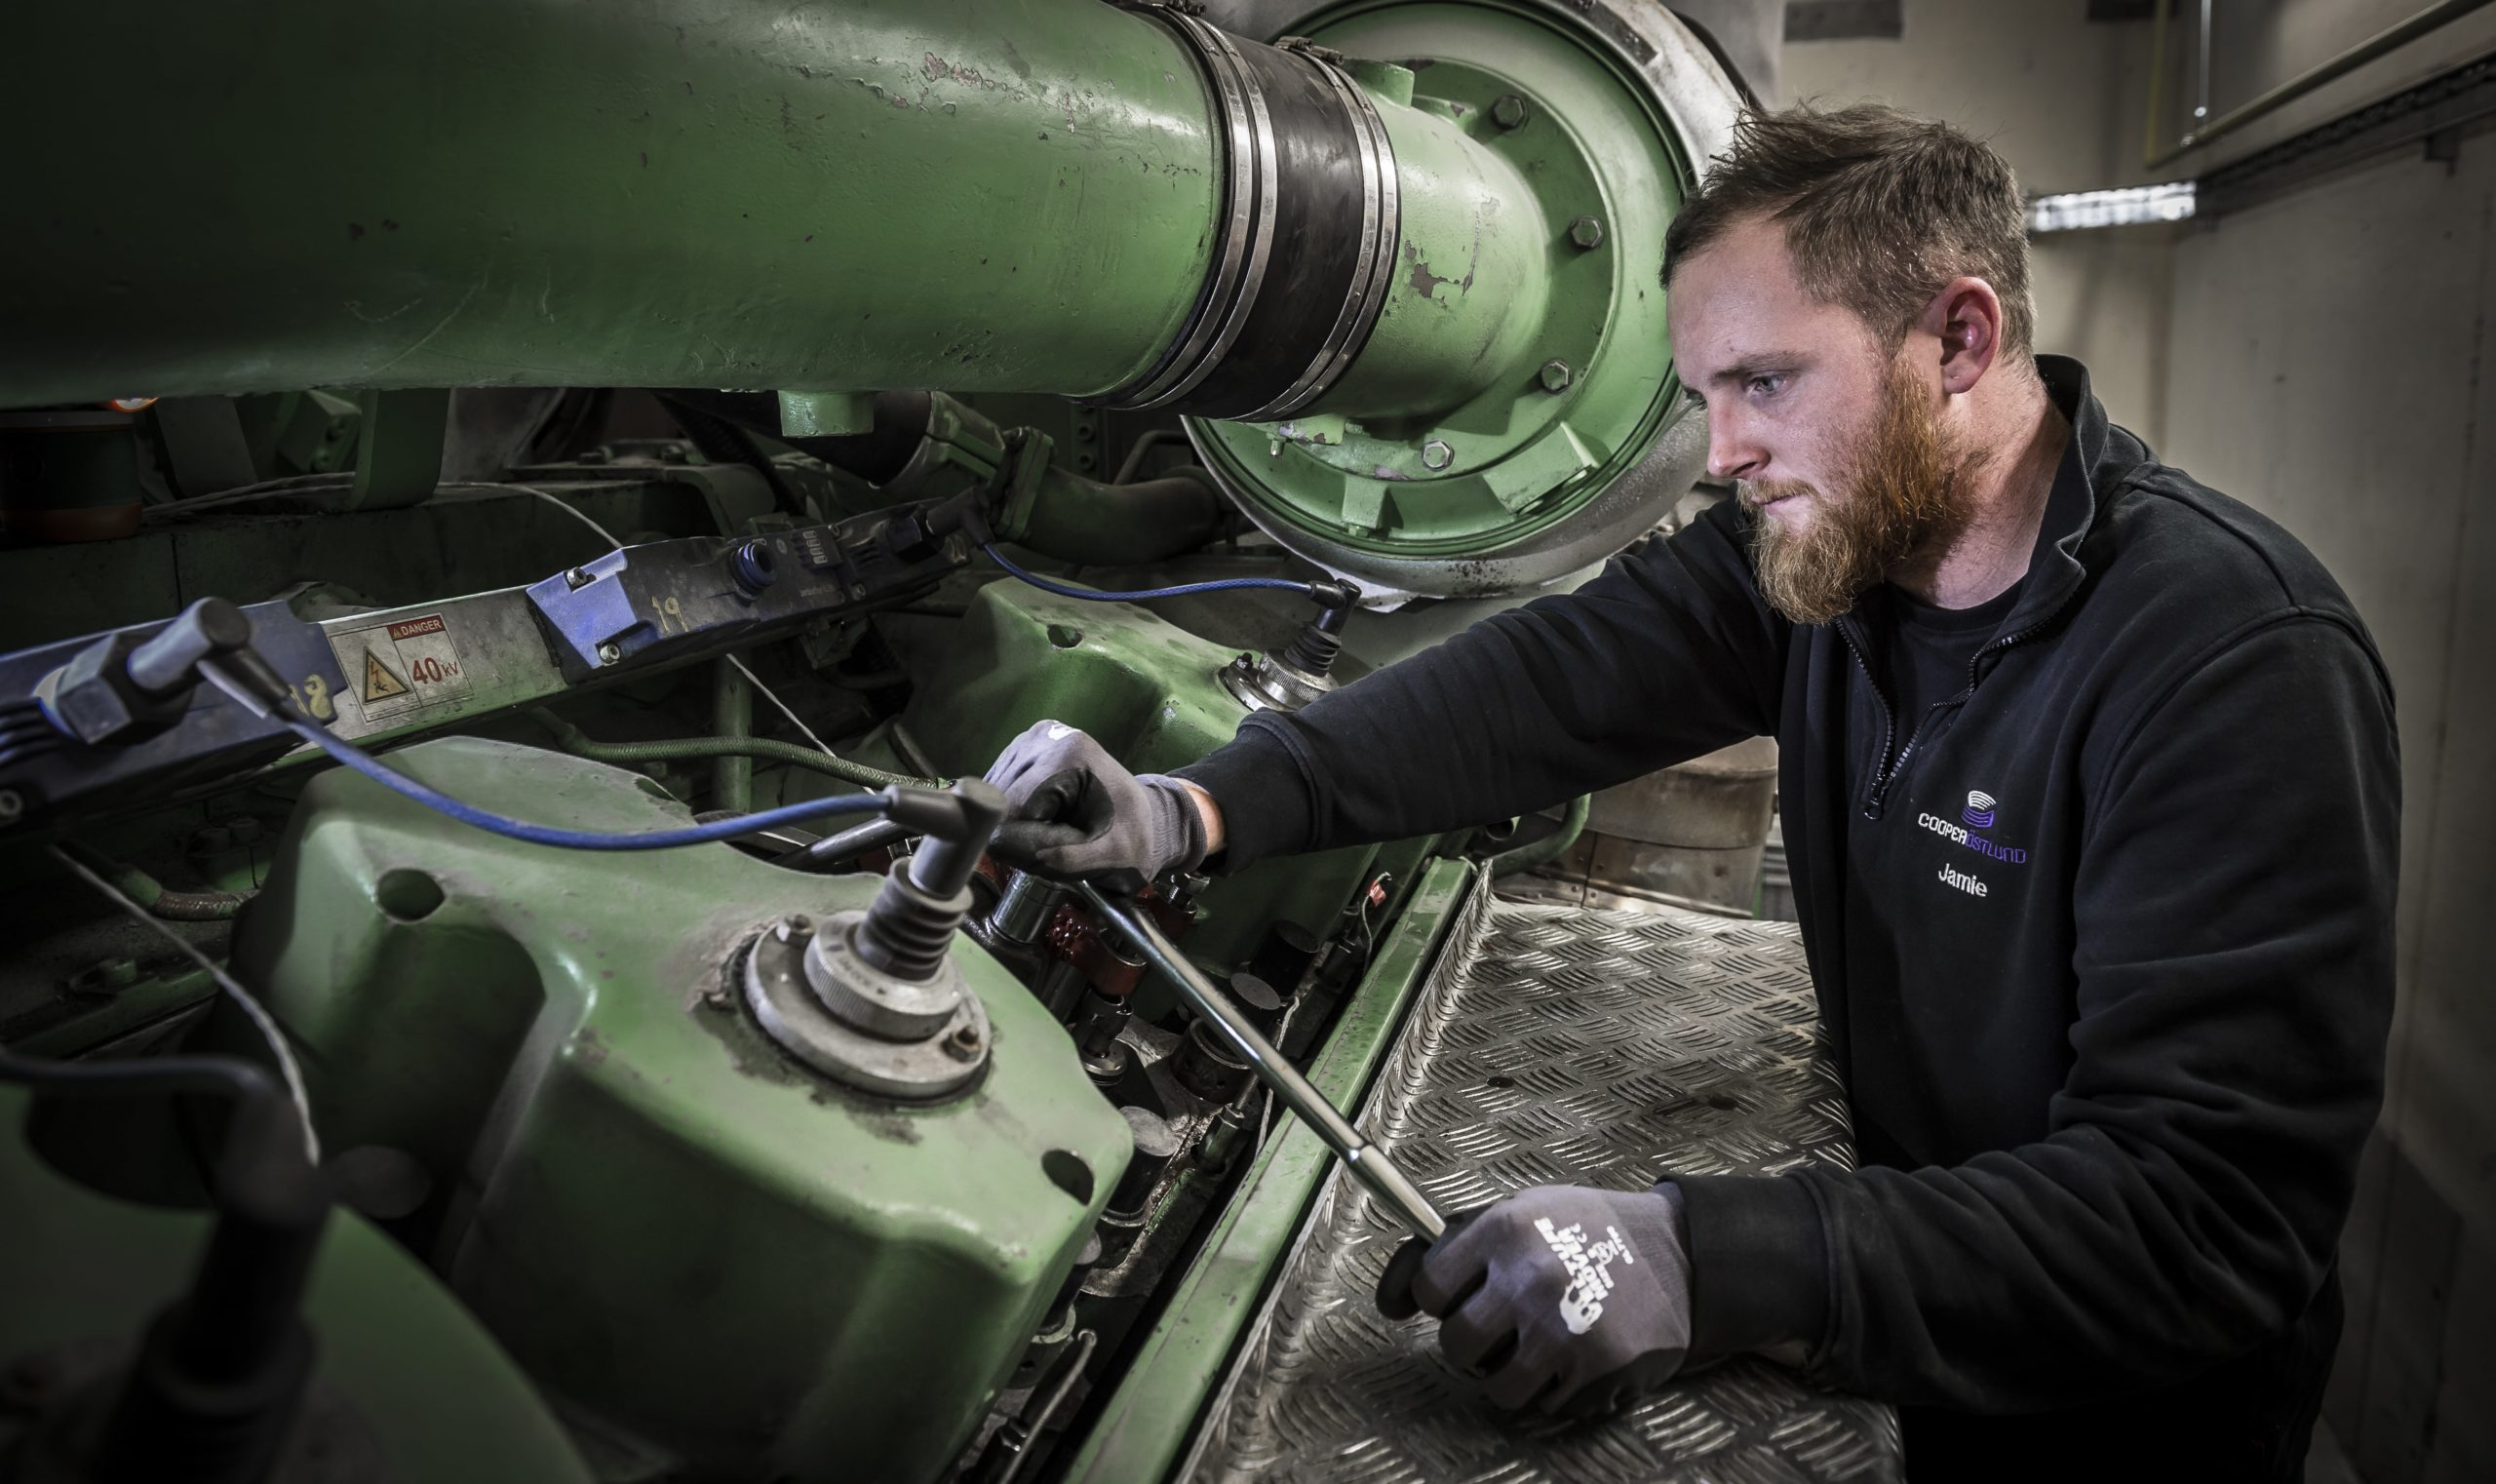 MEMBER'S PRESS RELEASE: Hat-trick Of CHP Maintenance Contracts For CooperOstlund